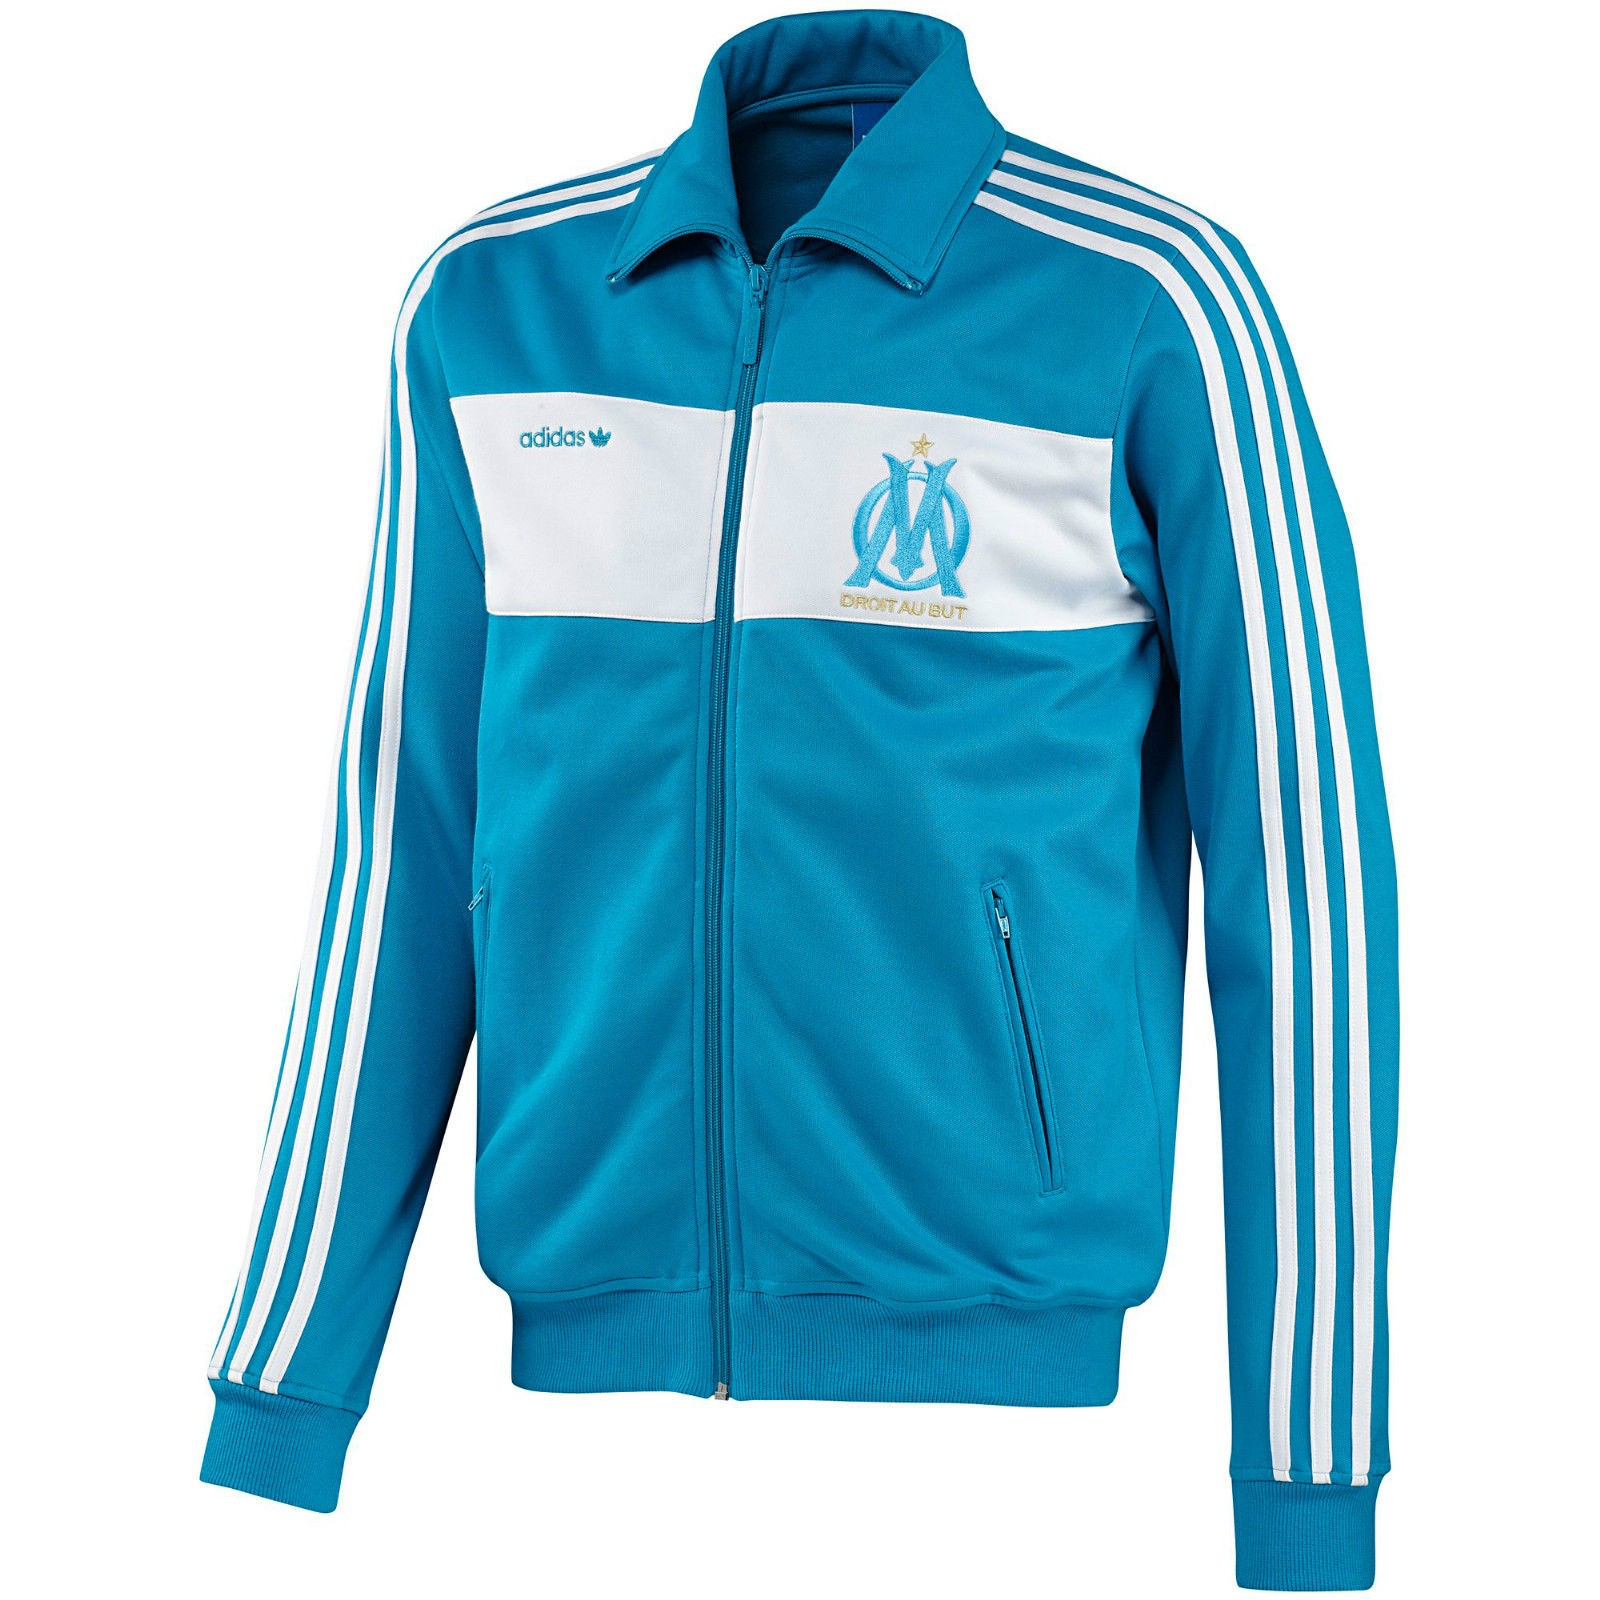 adidas a marseille,survetement olympique de marseille